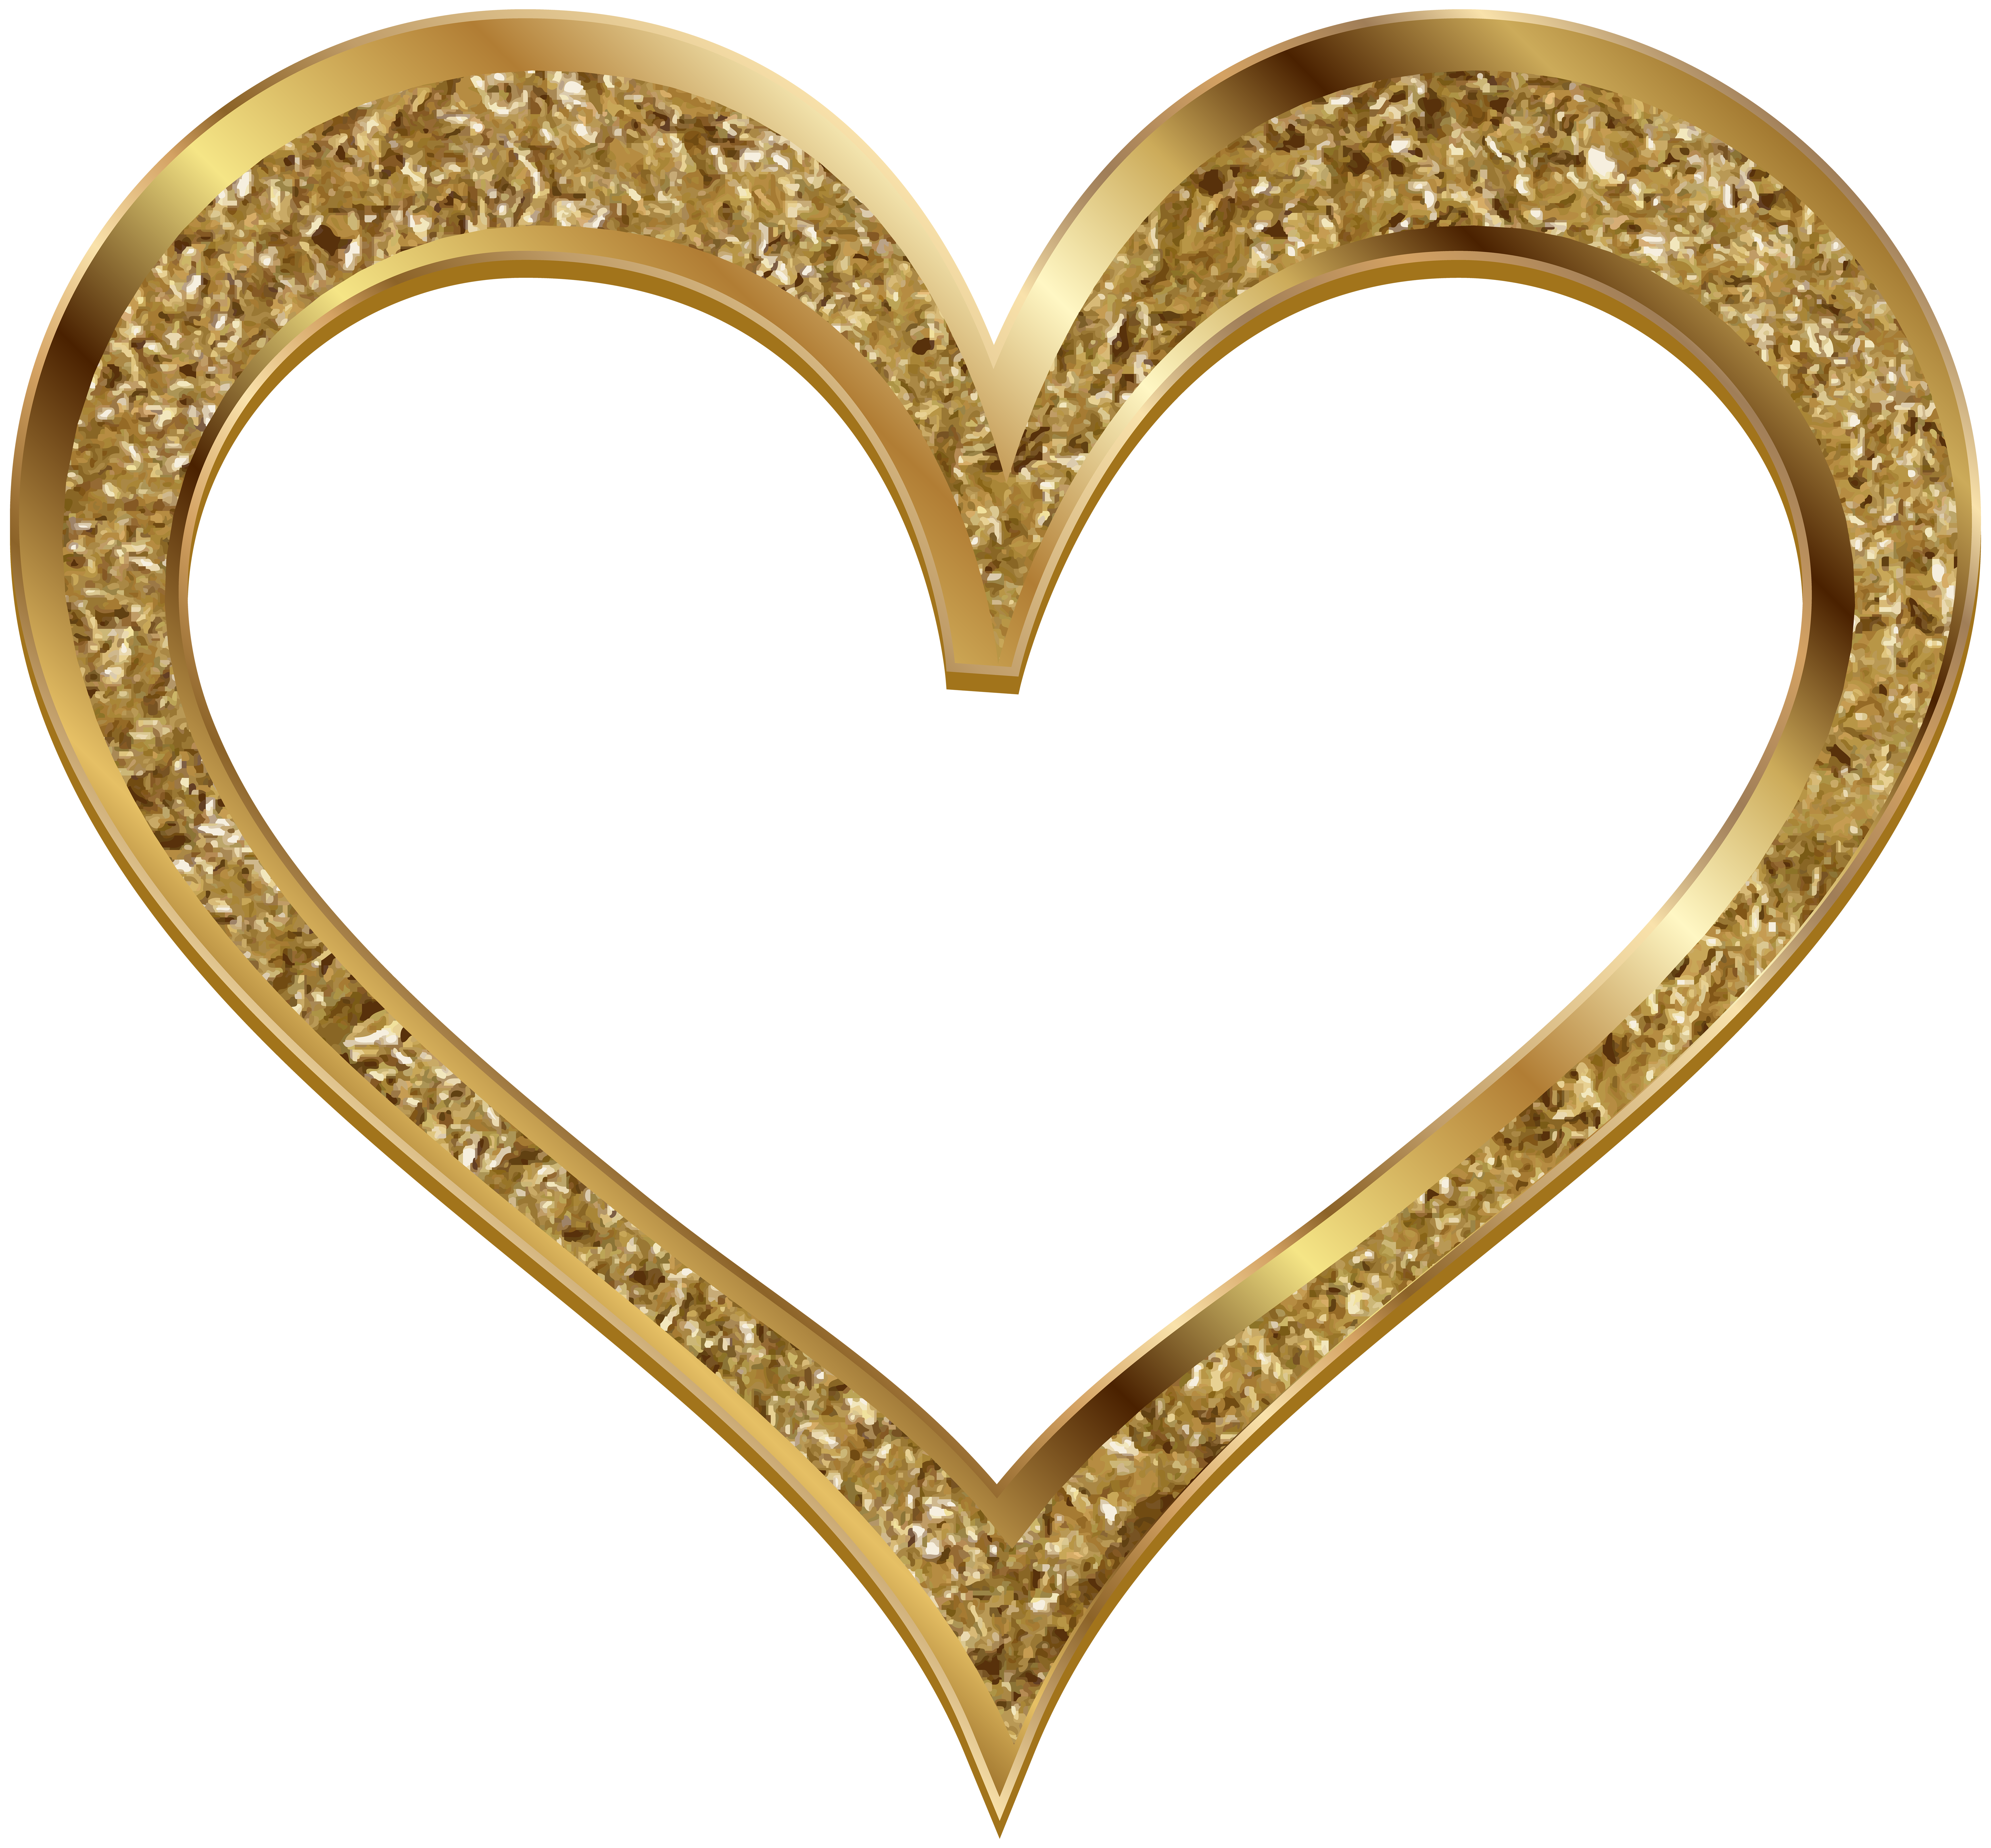 Gold Heart Clip Art PNG Image.